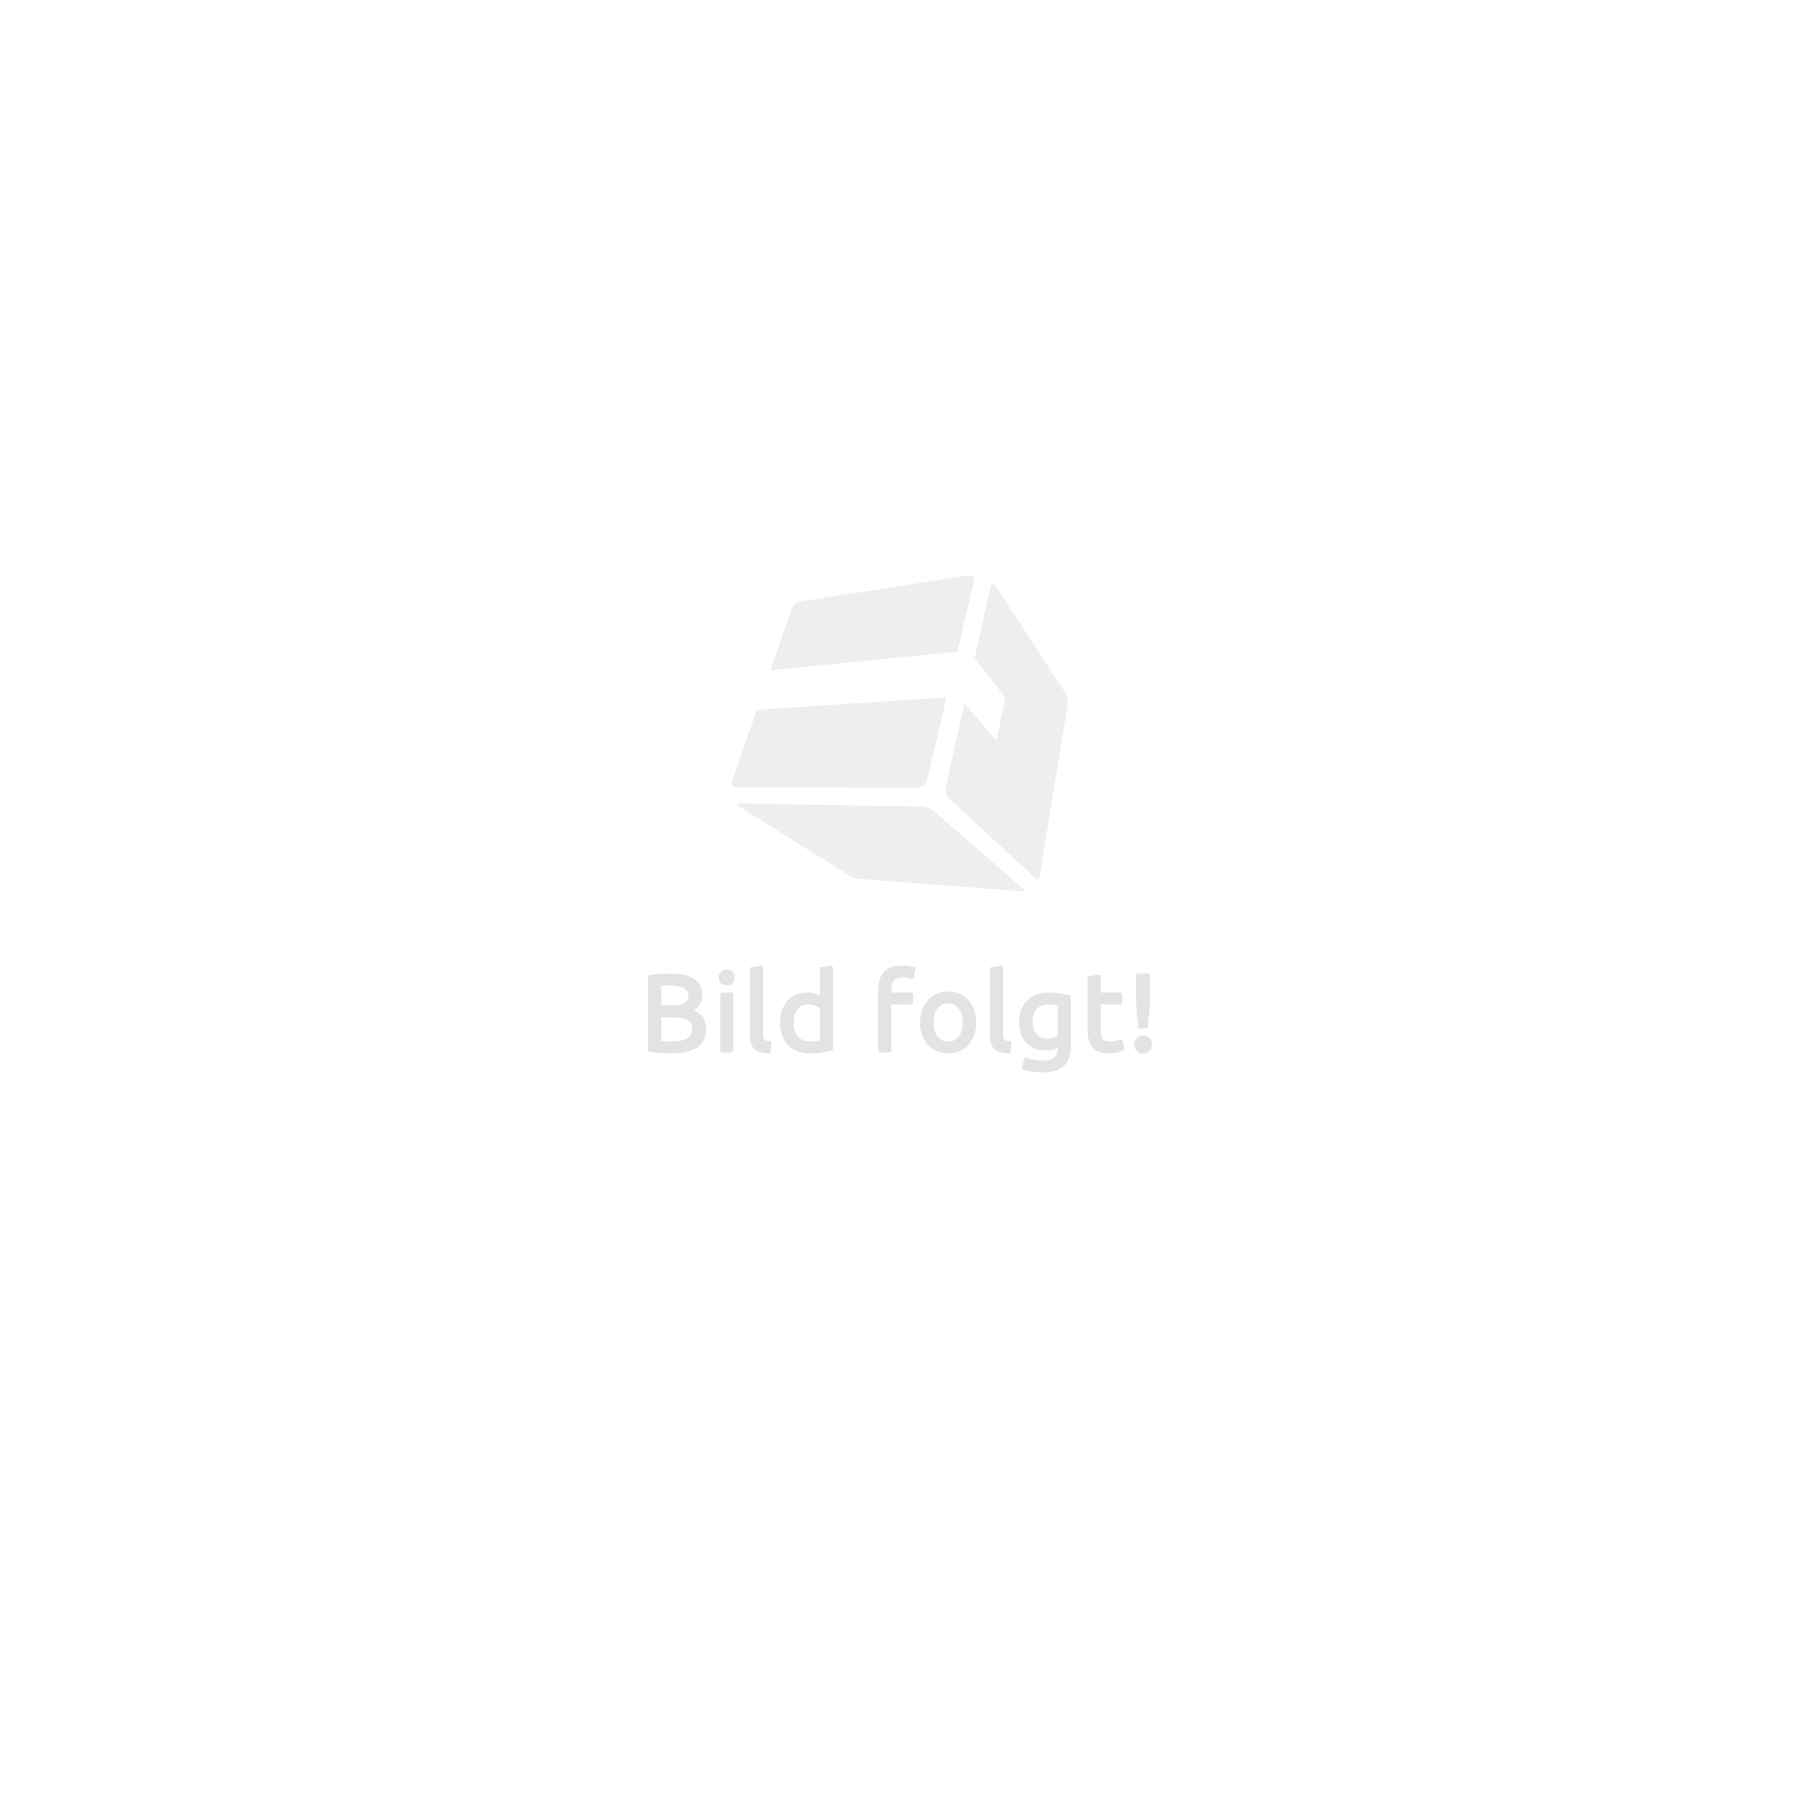 store lat ral double brise vue abri soleil aluminium r tractable 200x600cm gris ebay. Black Bedroom Furniture Sets. Home Design Ideas